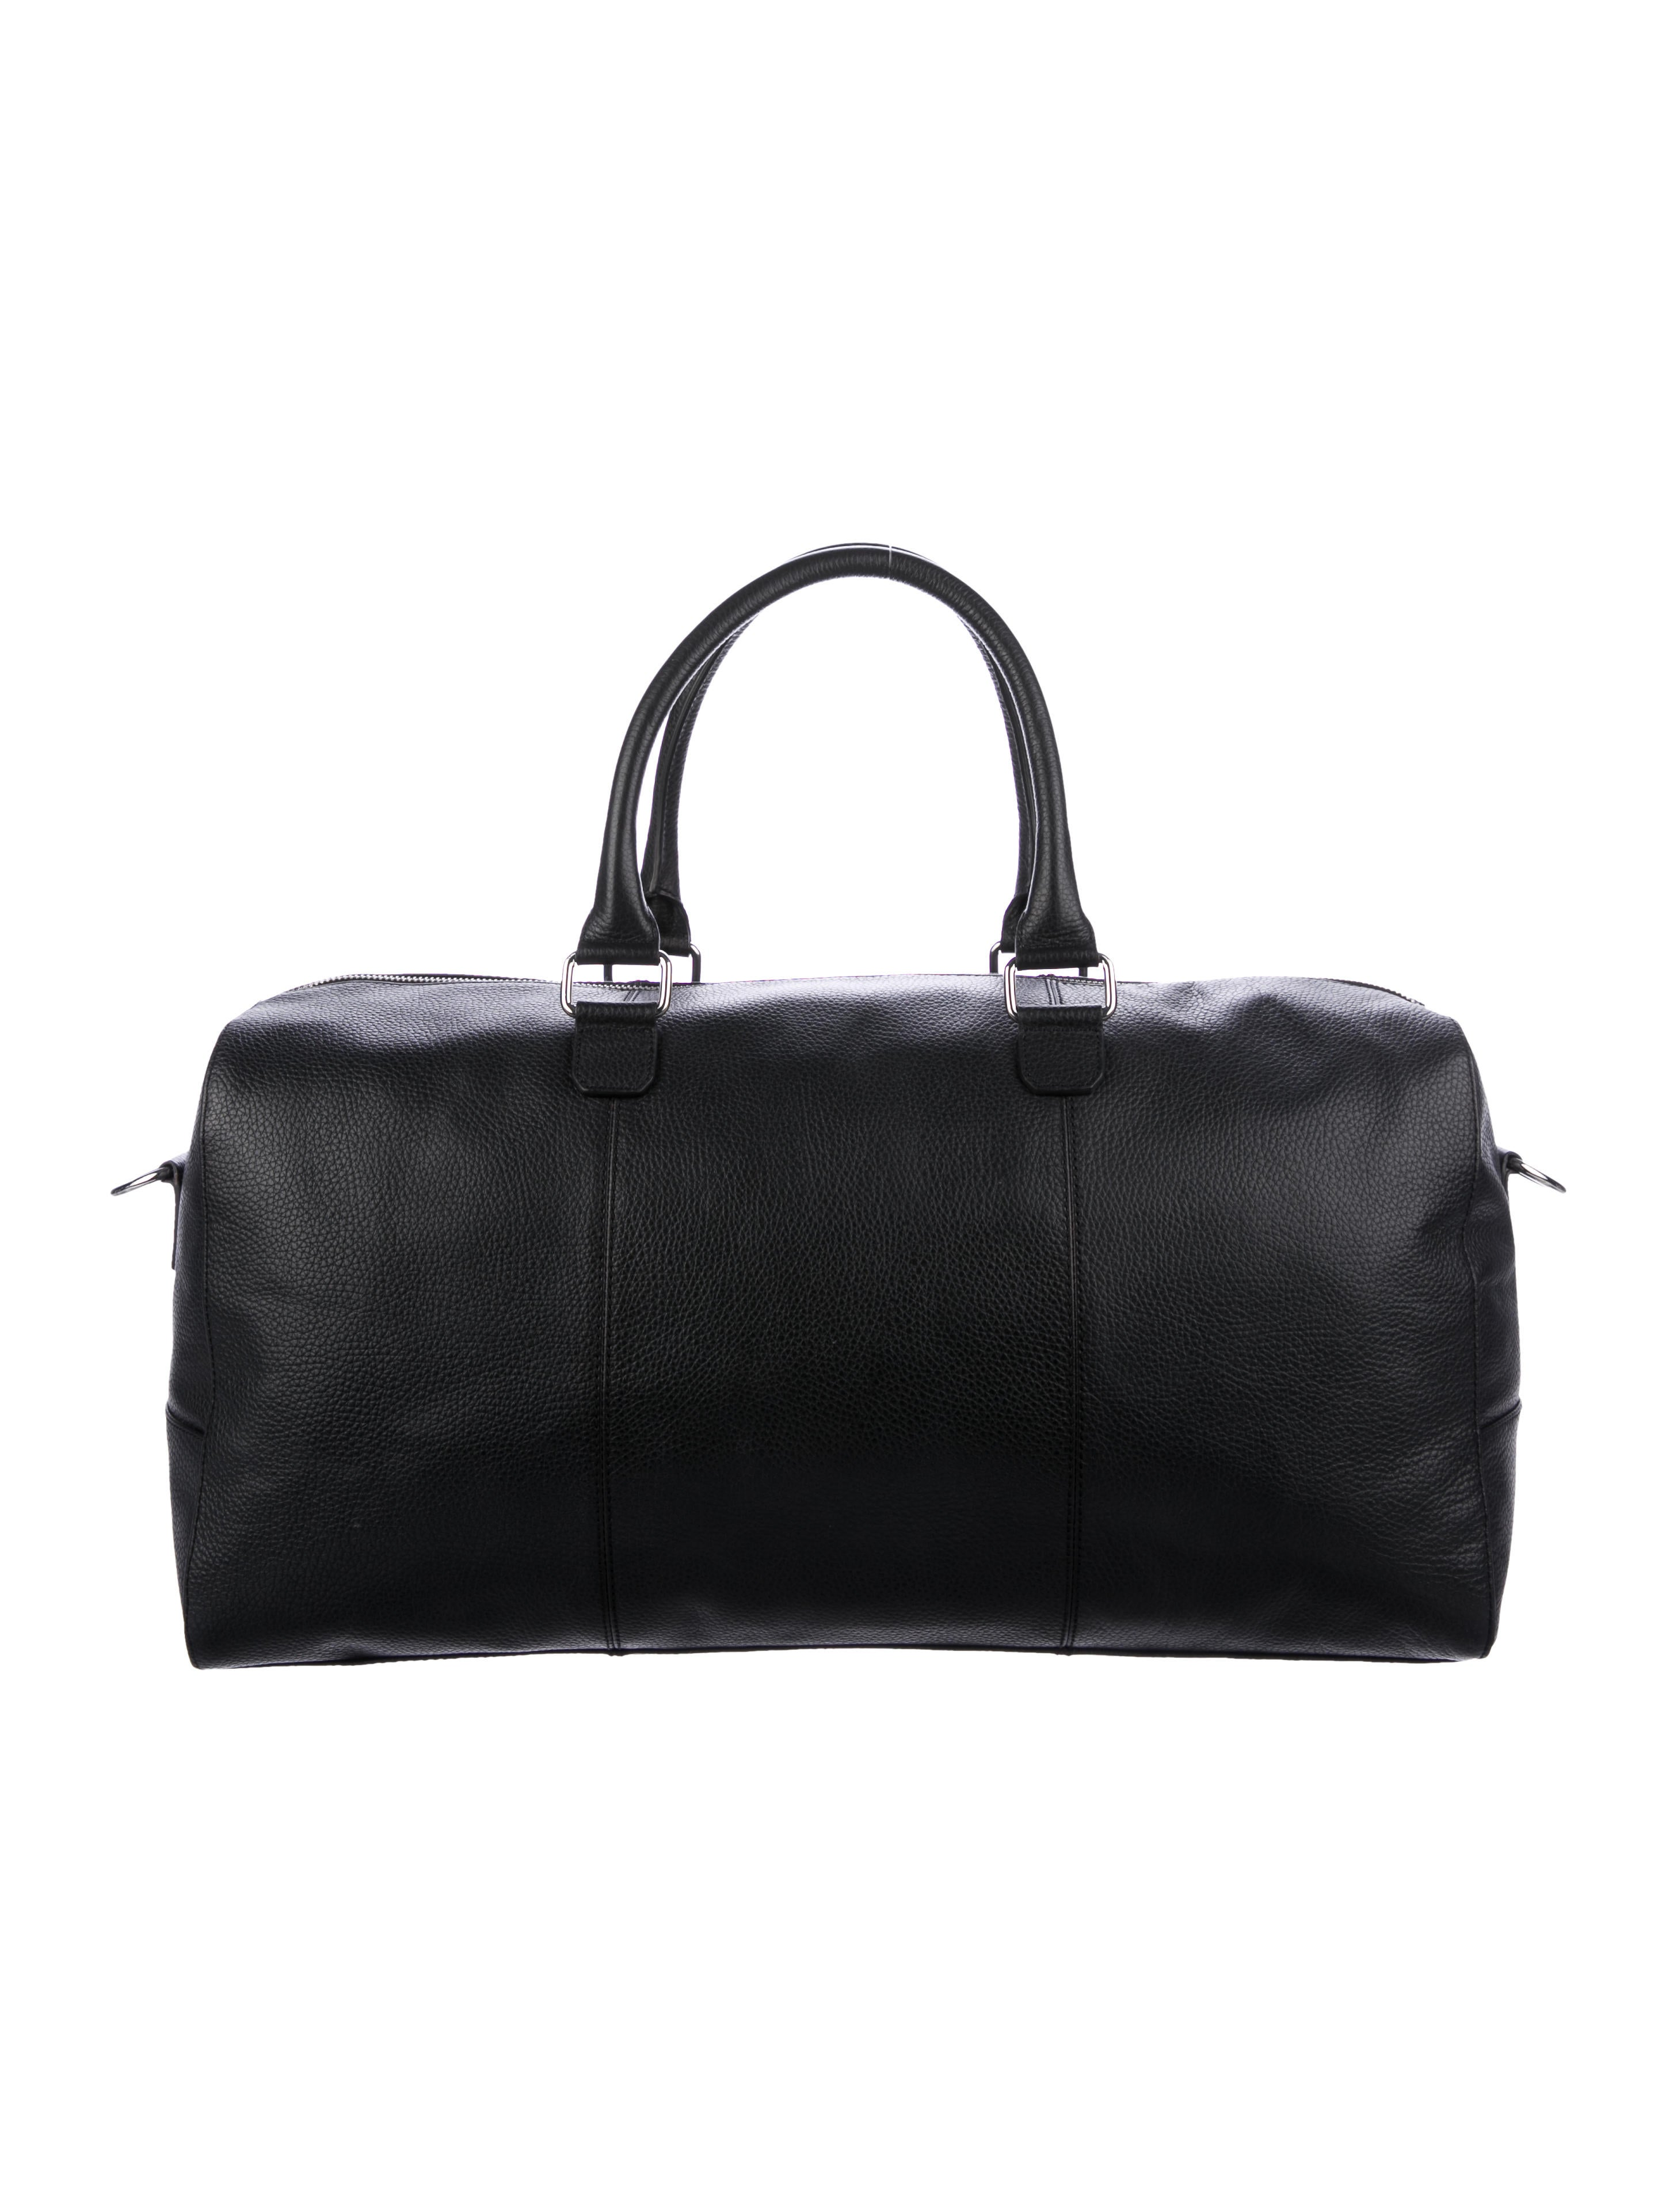 Cole Haan Pebbled Leather Duffle Bag w  Tags - Accessories ... a6d63d561418a